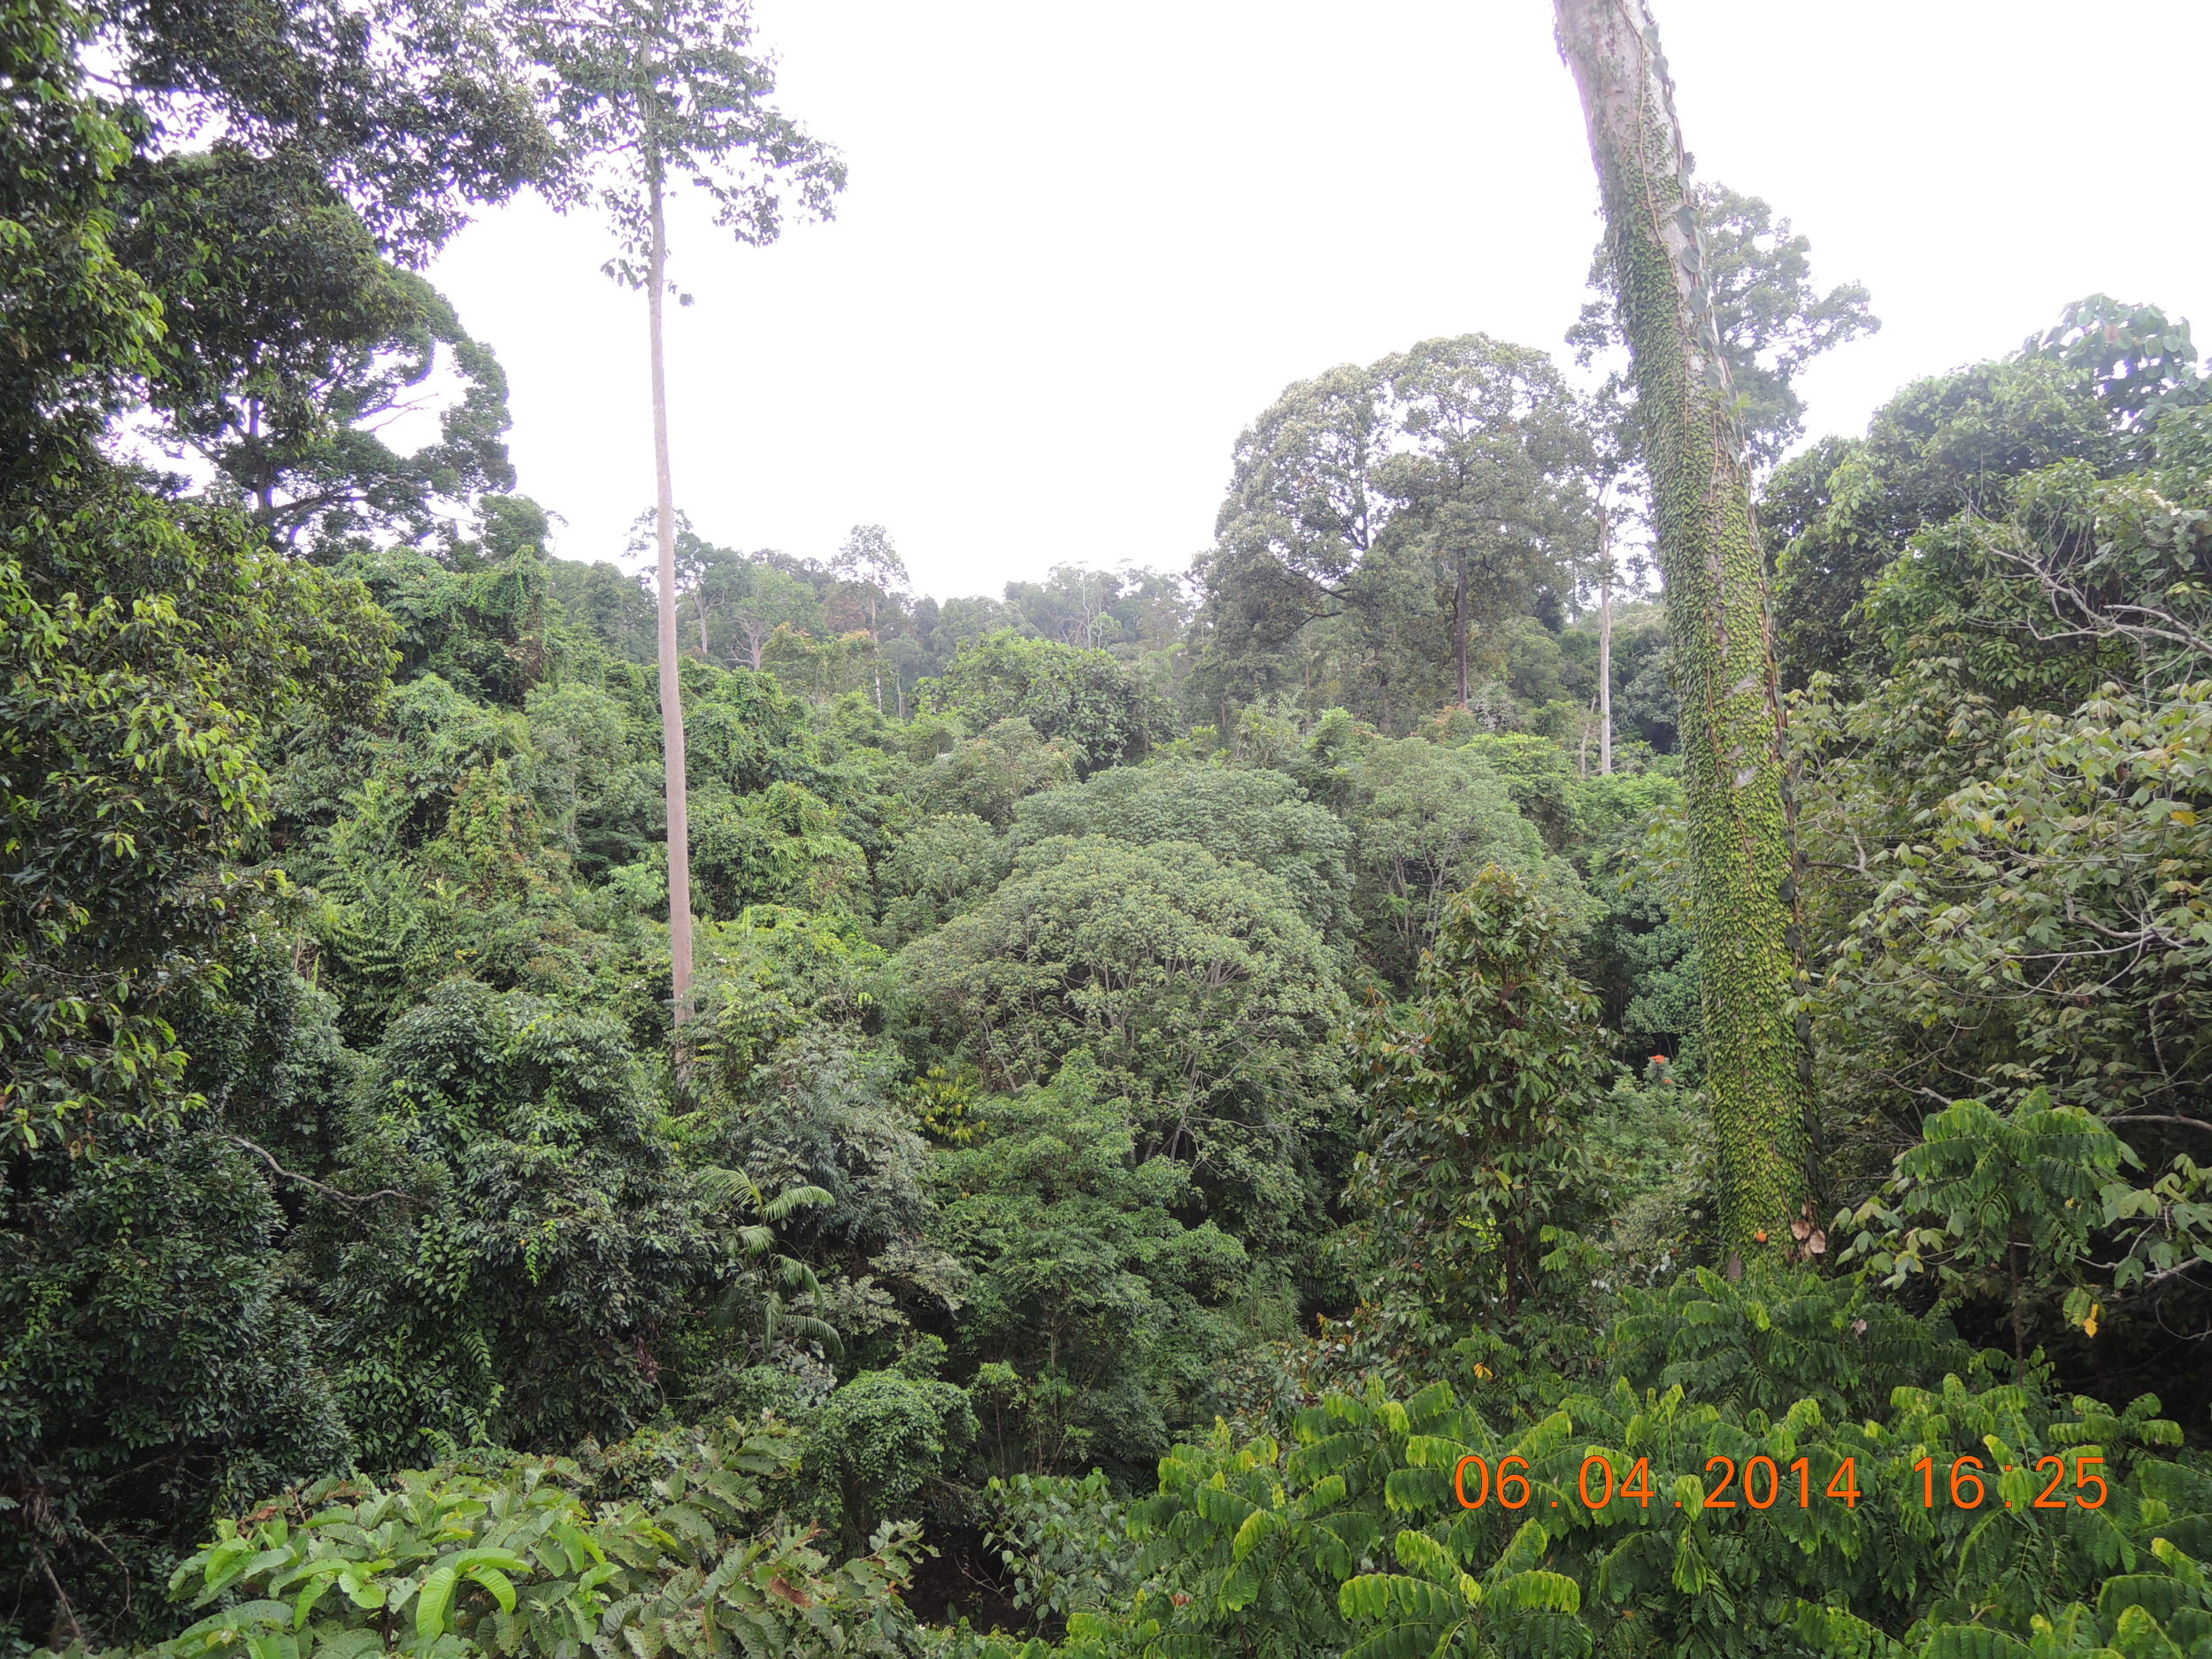 A view from an observation tower in the Sepilok Rain Forest